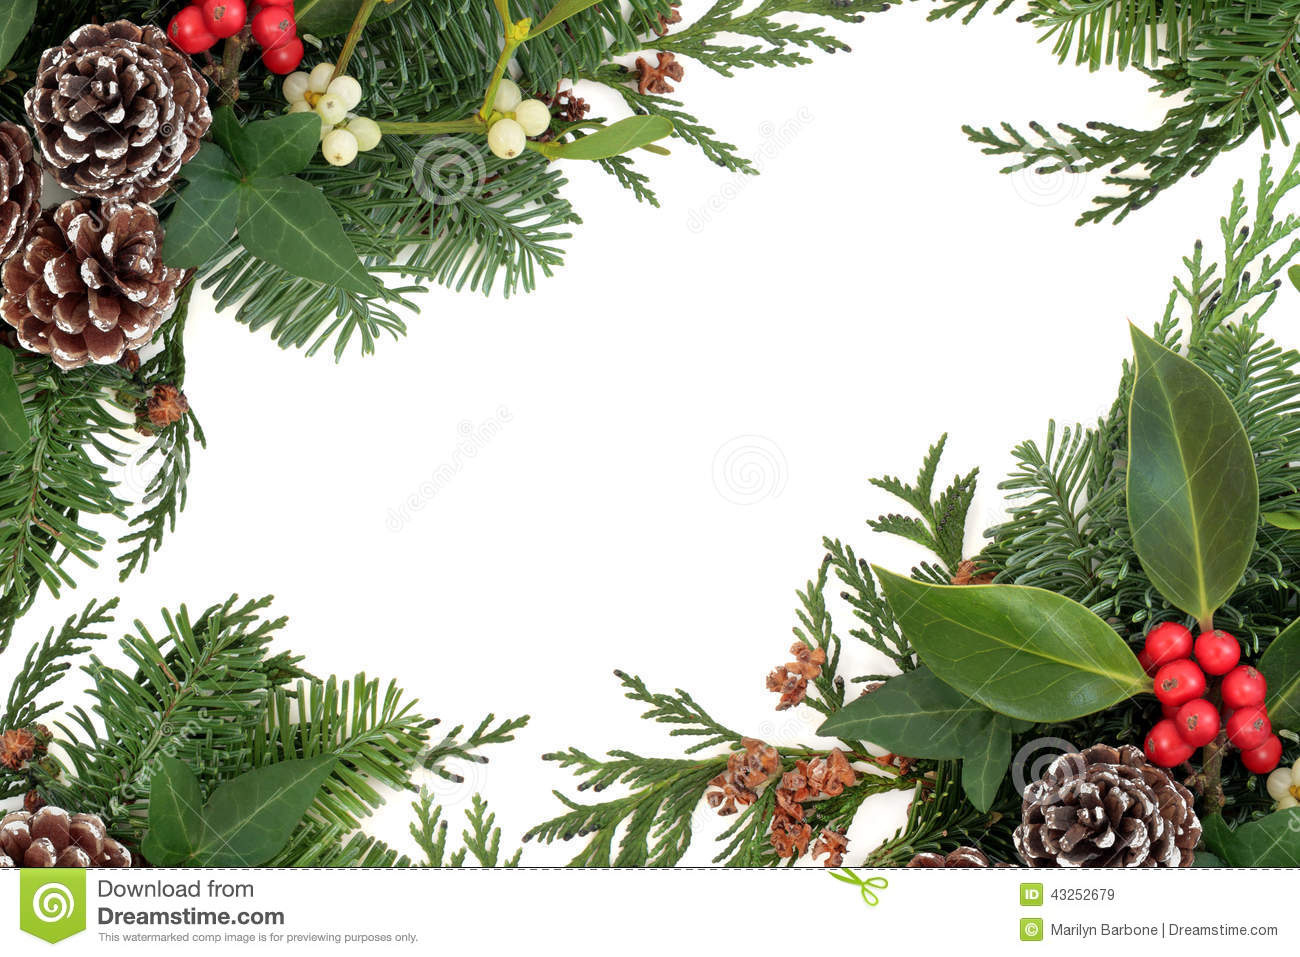 Why is holly a traditional christmas decoration - Royalty Free Stock Photo